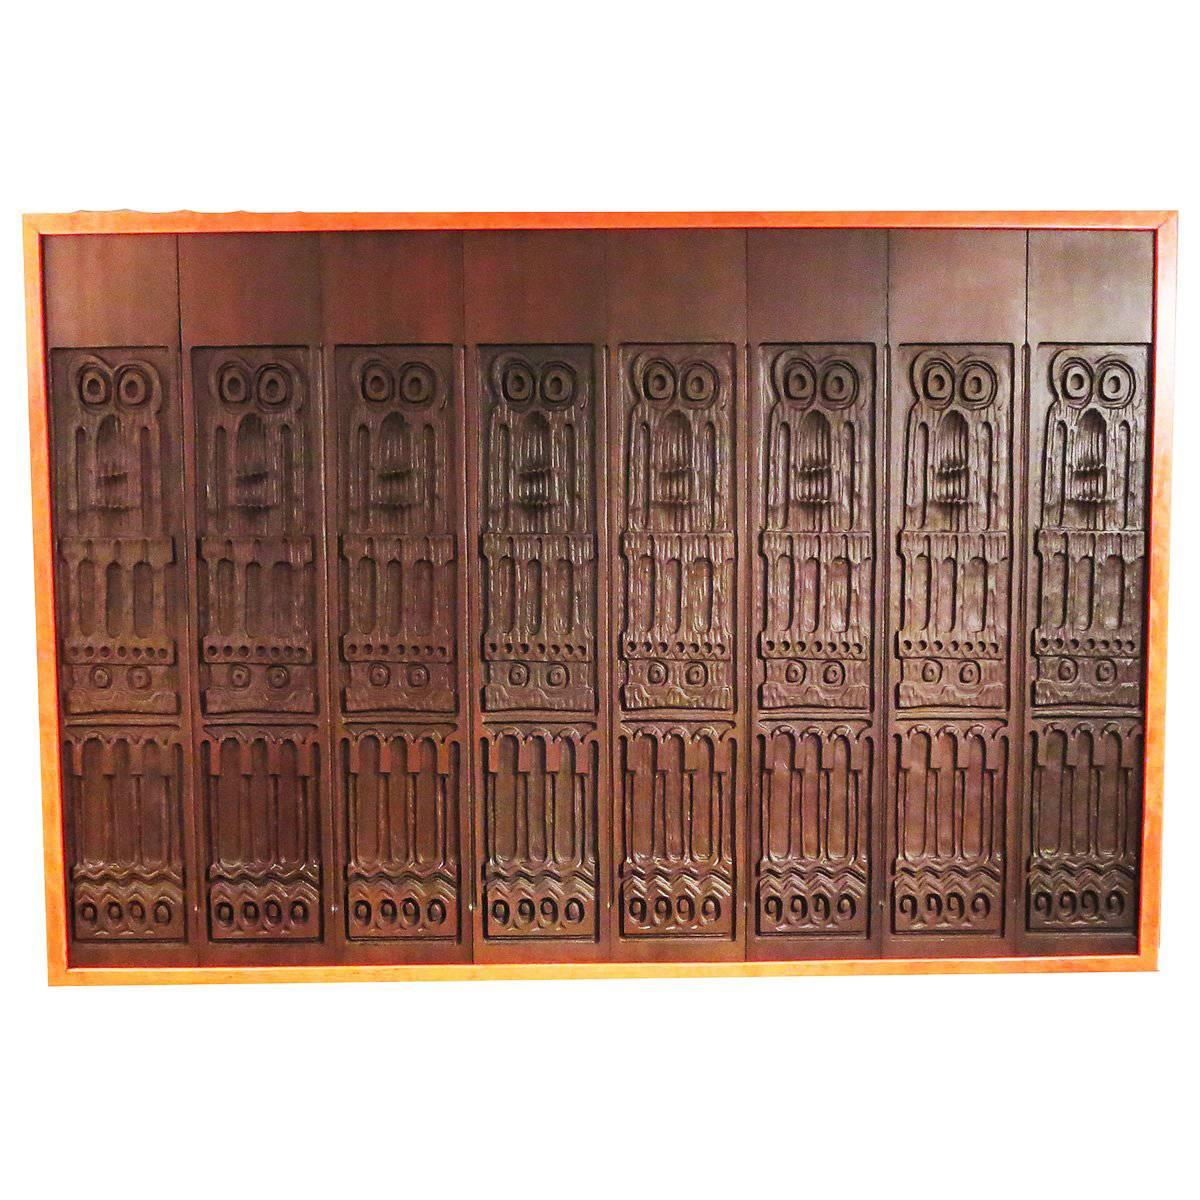 Evelyn Ackerman Panelcarve Wall Sculpture, 1963